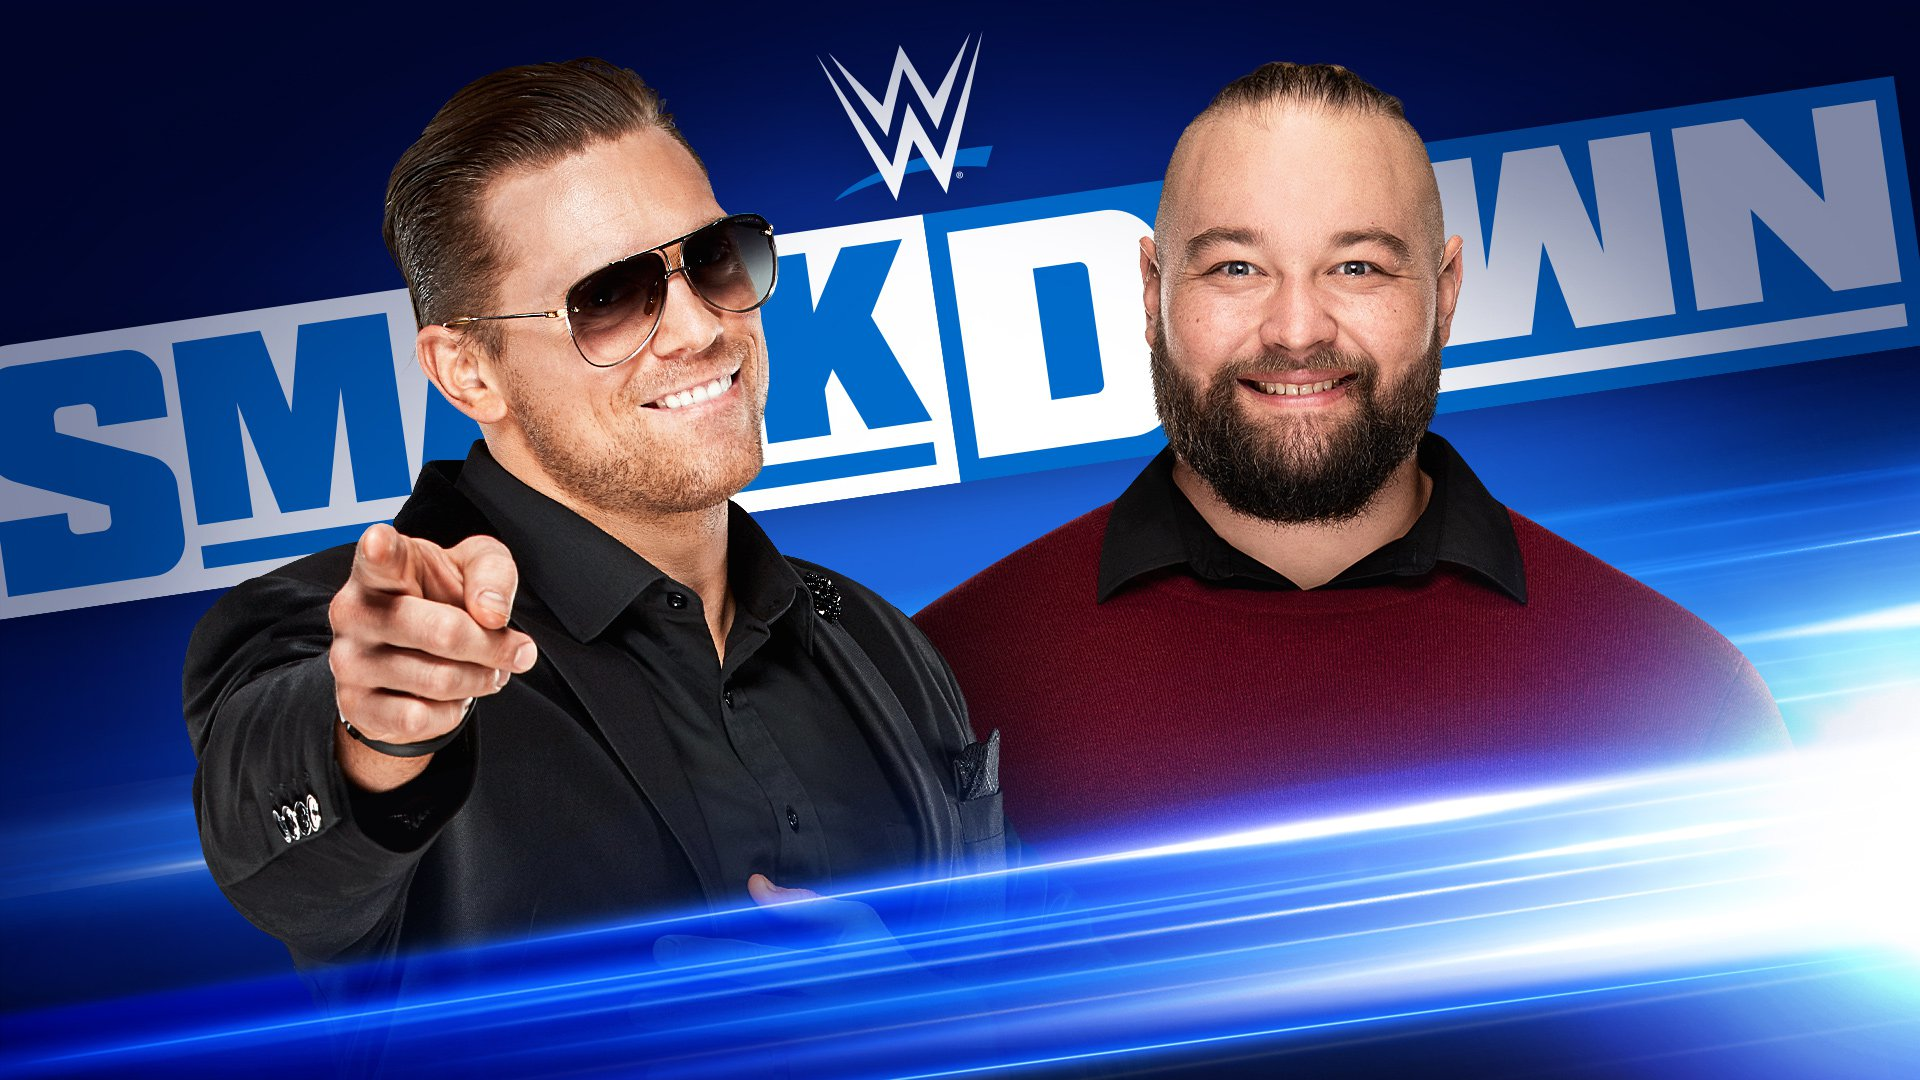 Match announced for next week's WWE Friday Night SmackDown